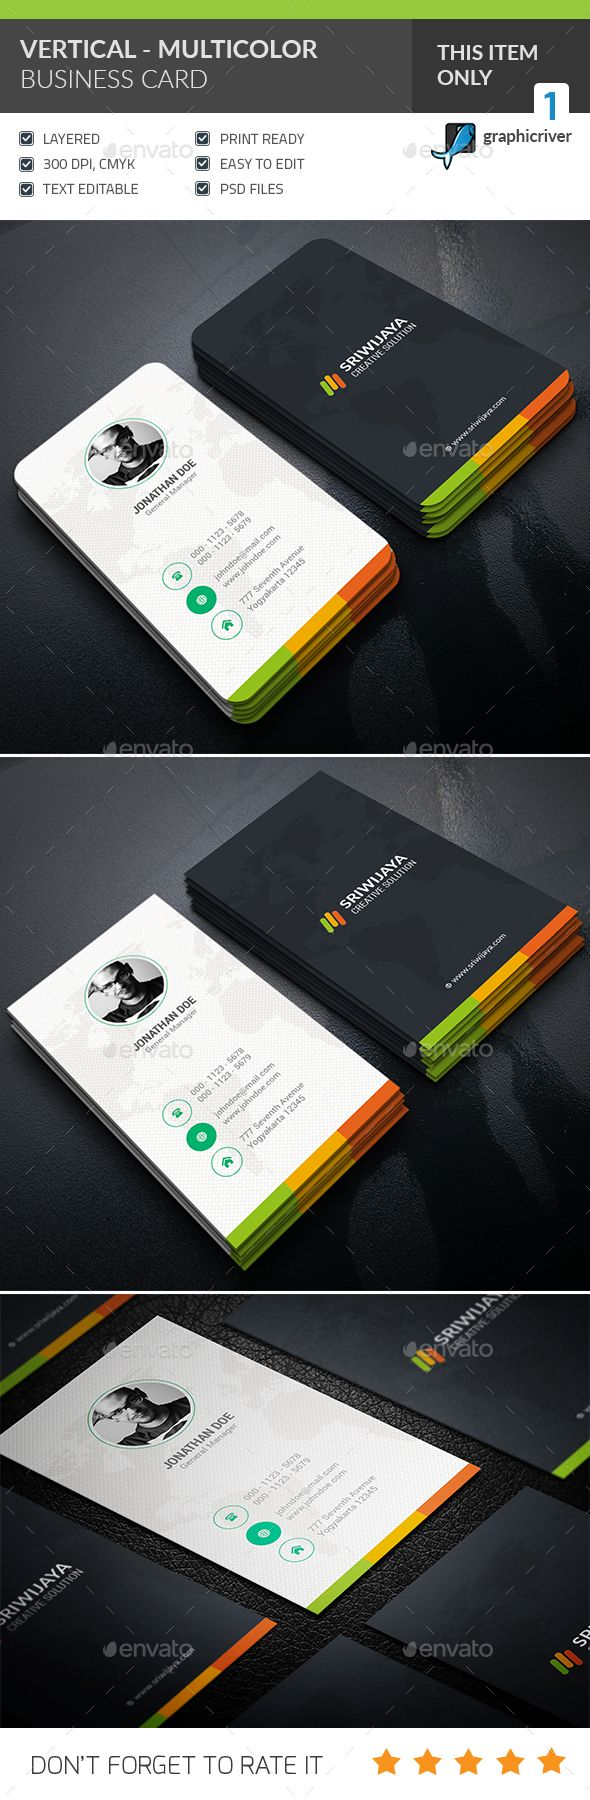 84 best Business Card Design images on Pinterest | Business cards ...